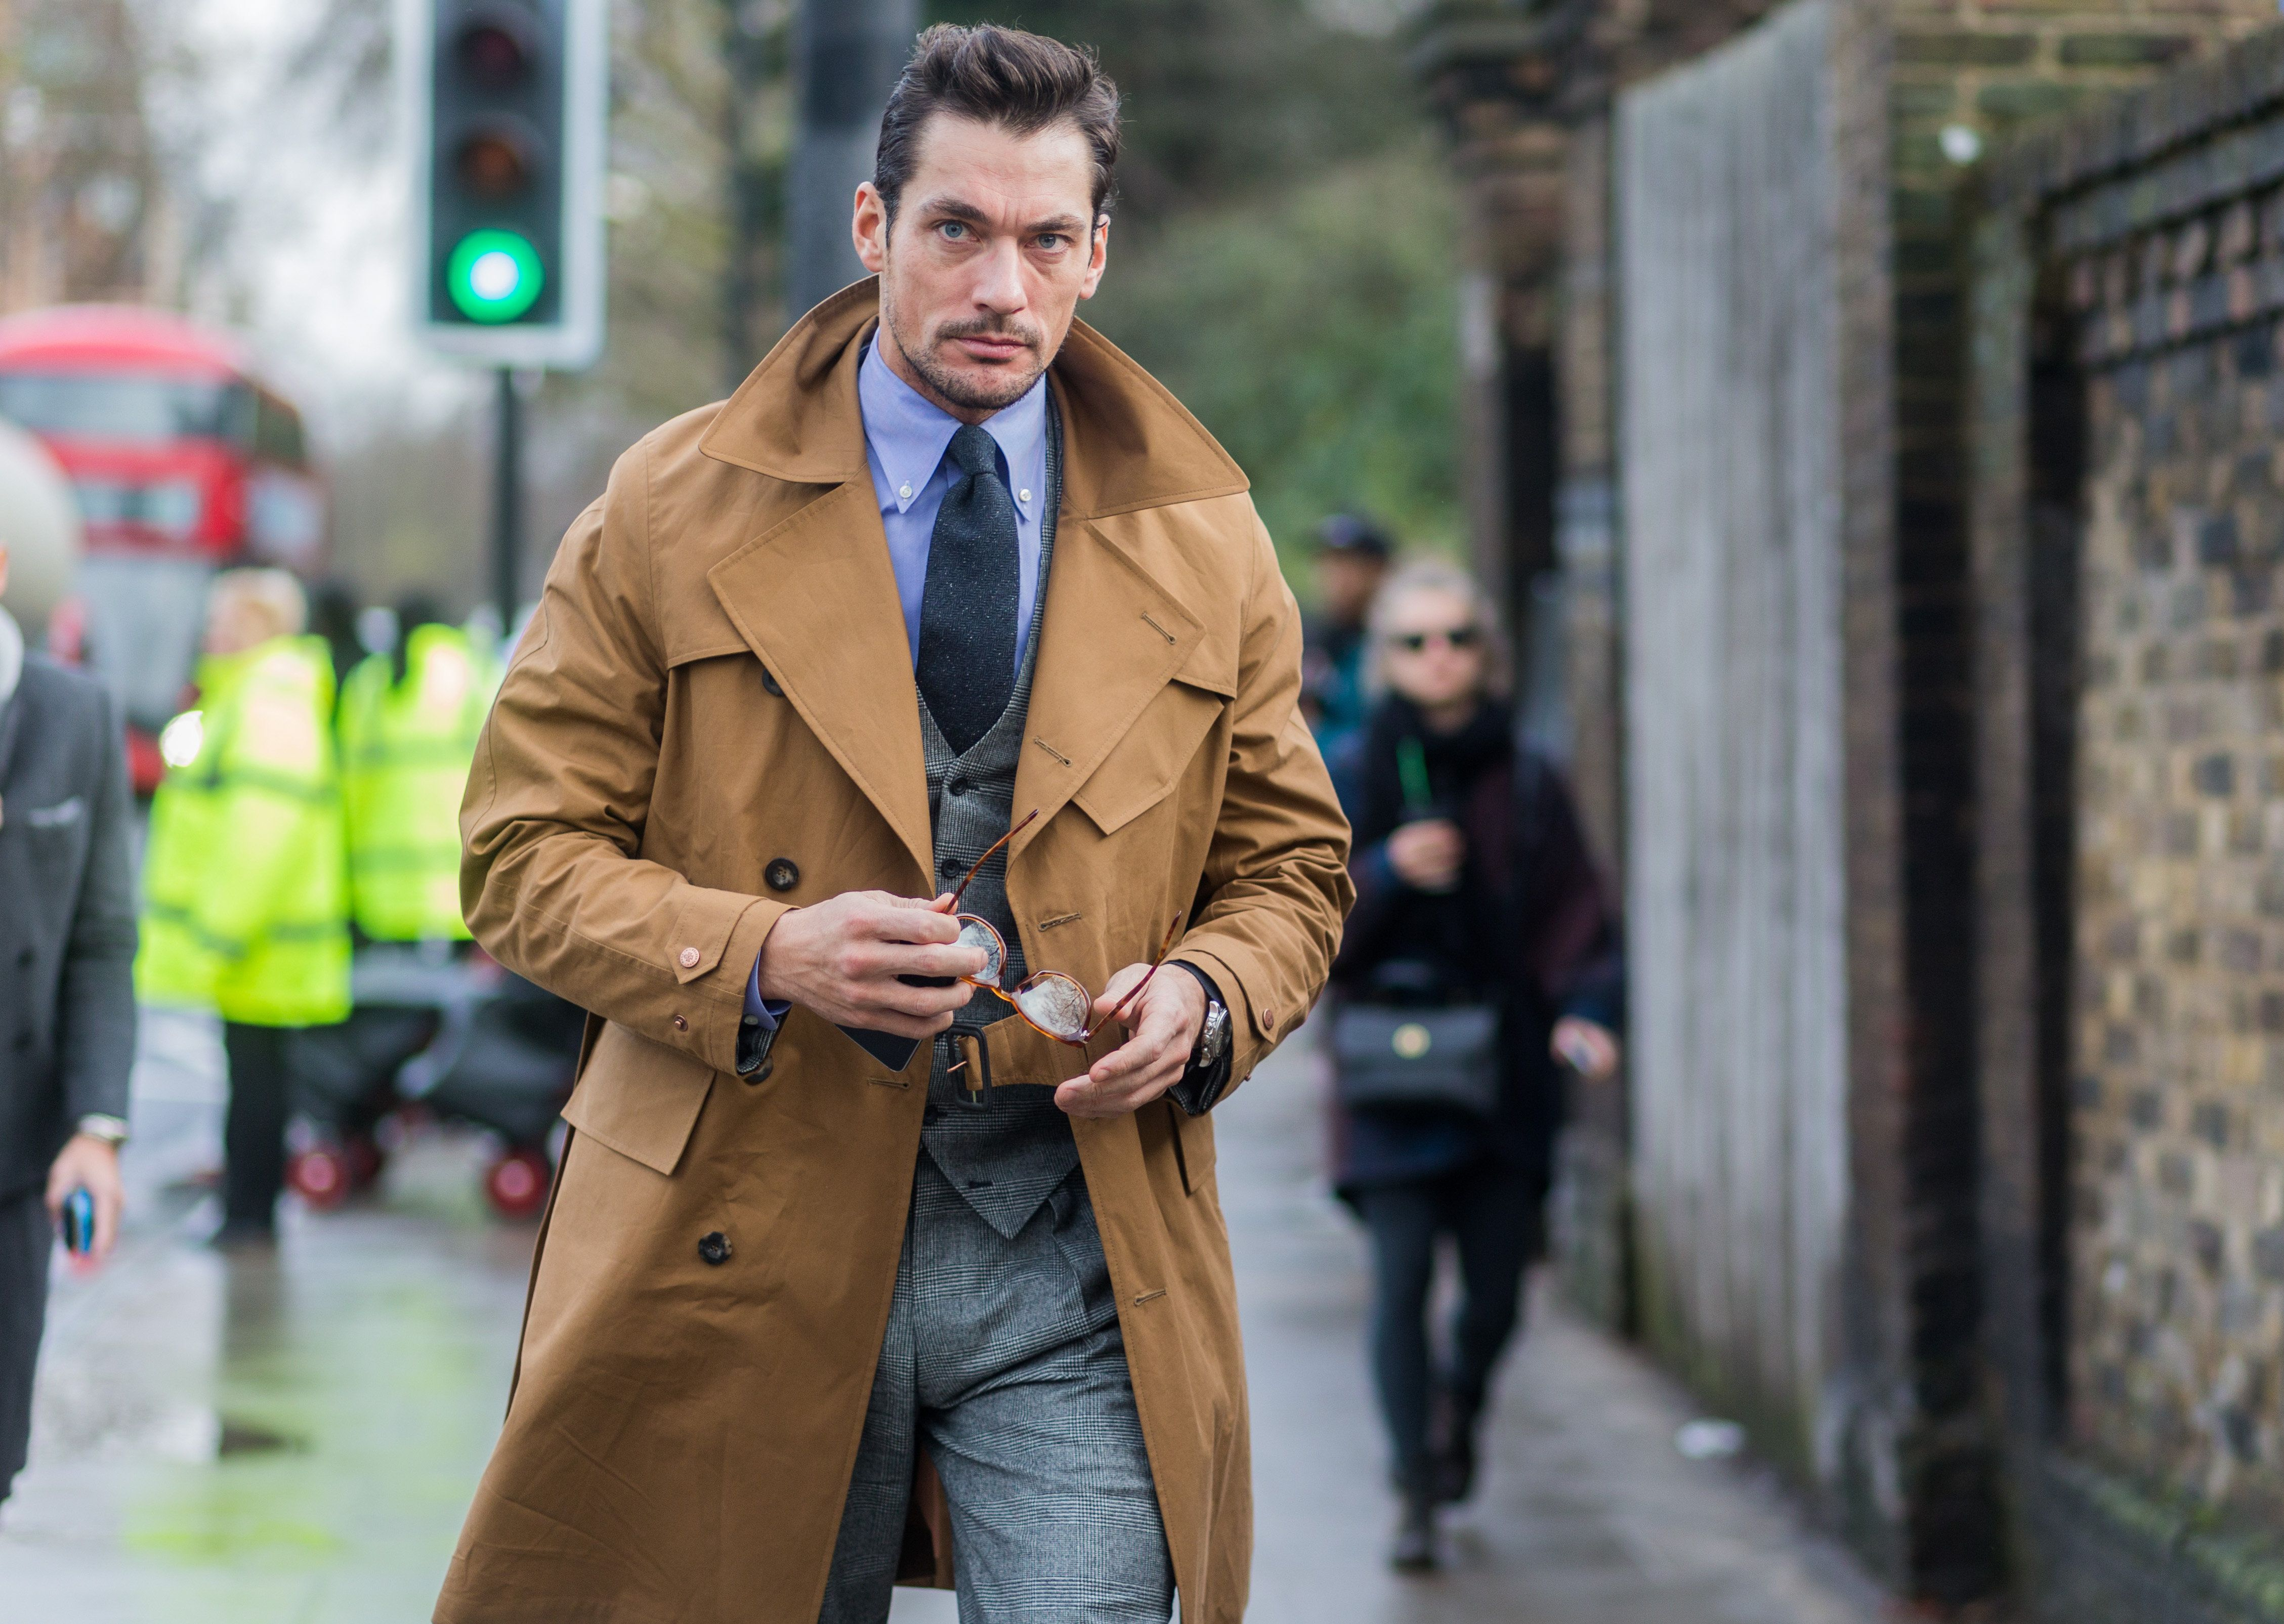 LONDON, ENGLAND, UNITED KINGDOM - JANUARY 11: David Gandy before the Burberry Prorsum show during London Collections Men AW16 on January 11, 2016 in London, England. (Photo by Christian Vierig/Getty Images)